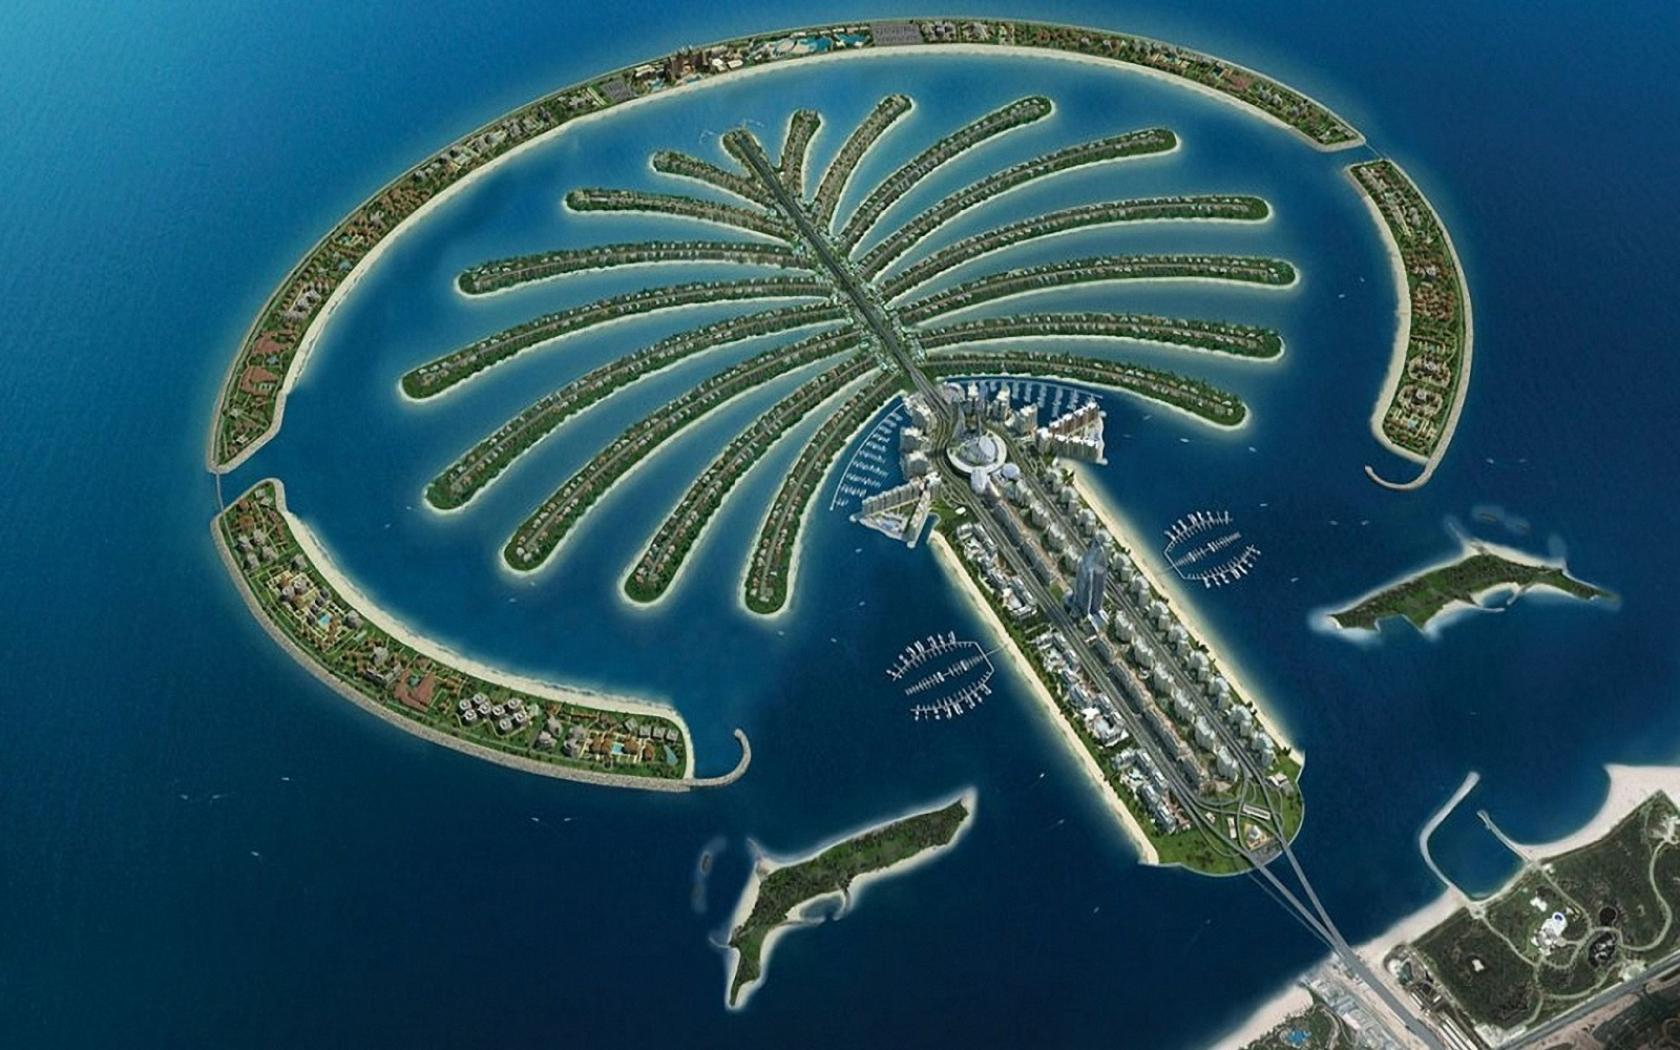 Palm Island Emerald Palace Hotel and Condominiums     Dubai    M.Arch Architects principal March Chadwick consulted with Perkins Eastman architects on the design and planning of 700 condominium apartments, and a 1500 hotel room called the Emerald Palace planned for the Dubai Palm Islands in the Arab Emirates.